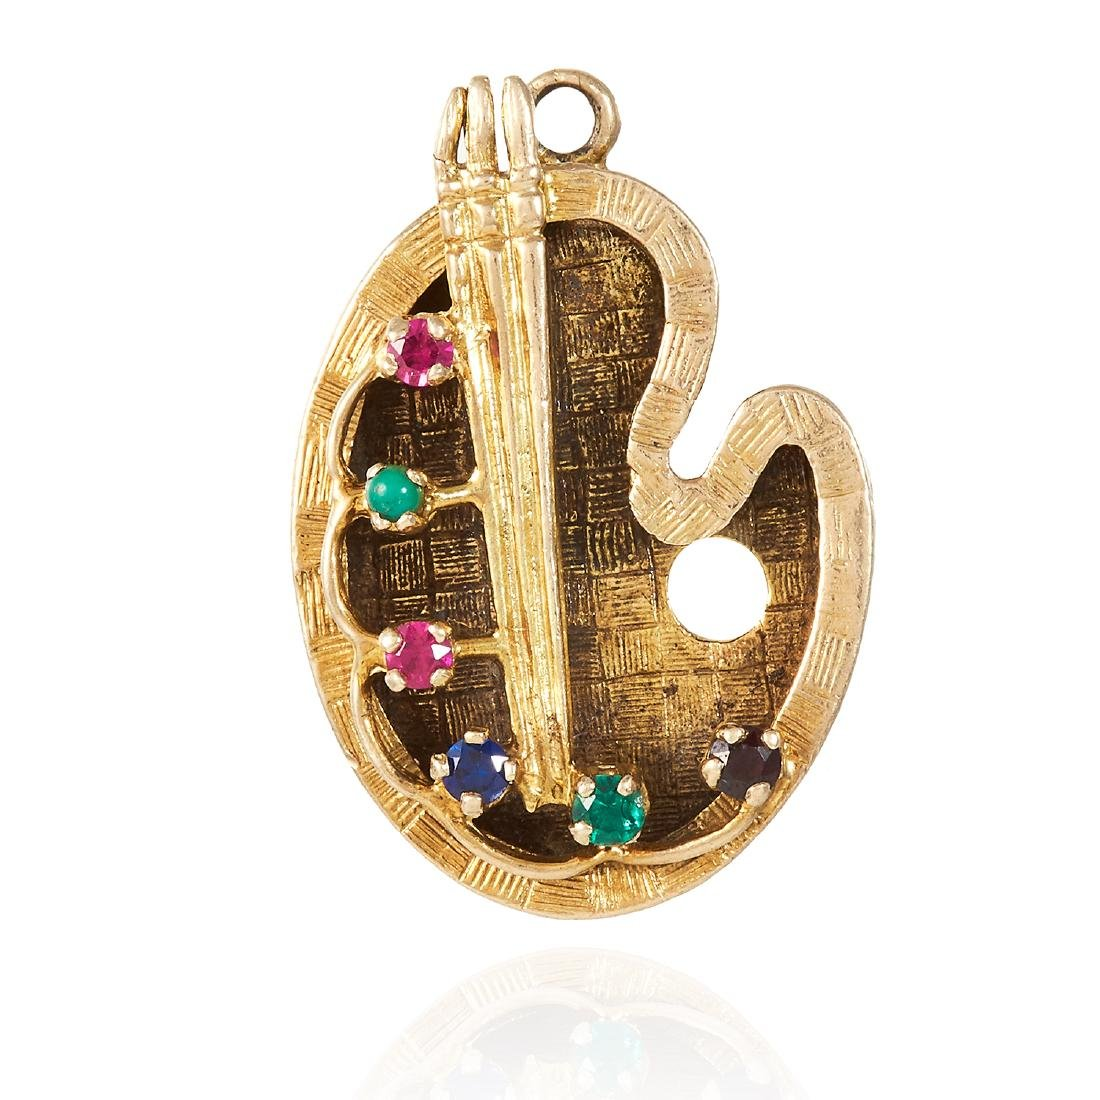 A GEMSET PAINT PALETTE PENDANT in 9ct yellow gold,